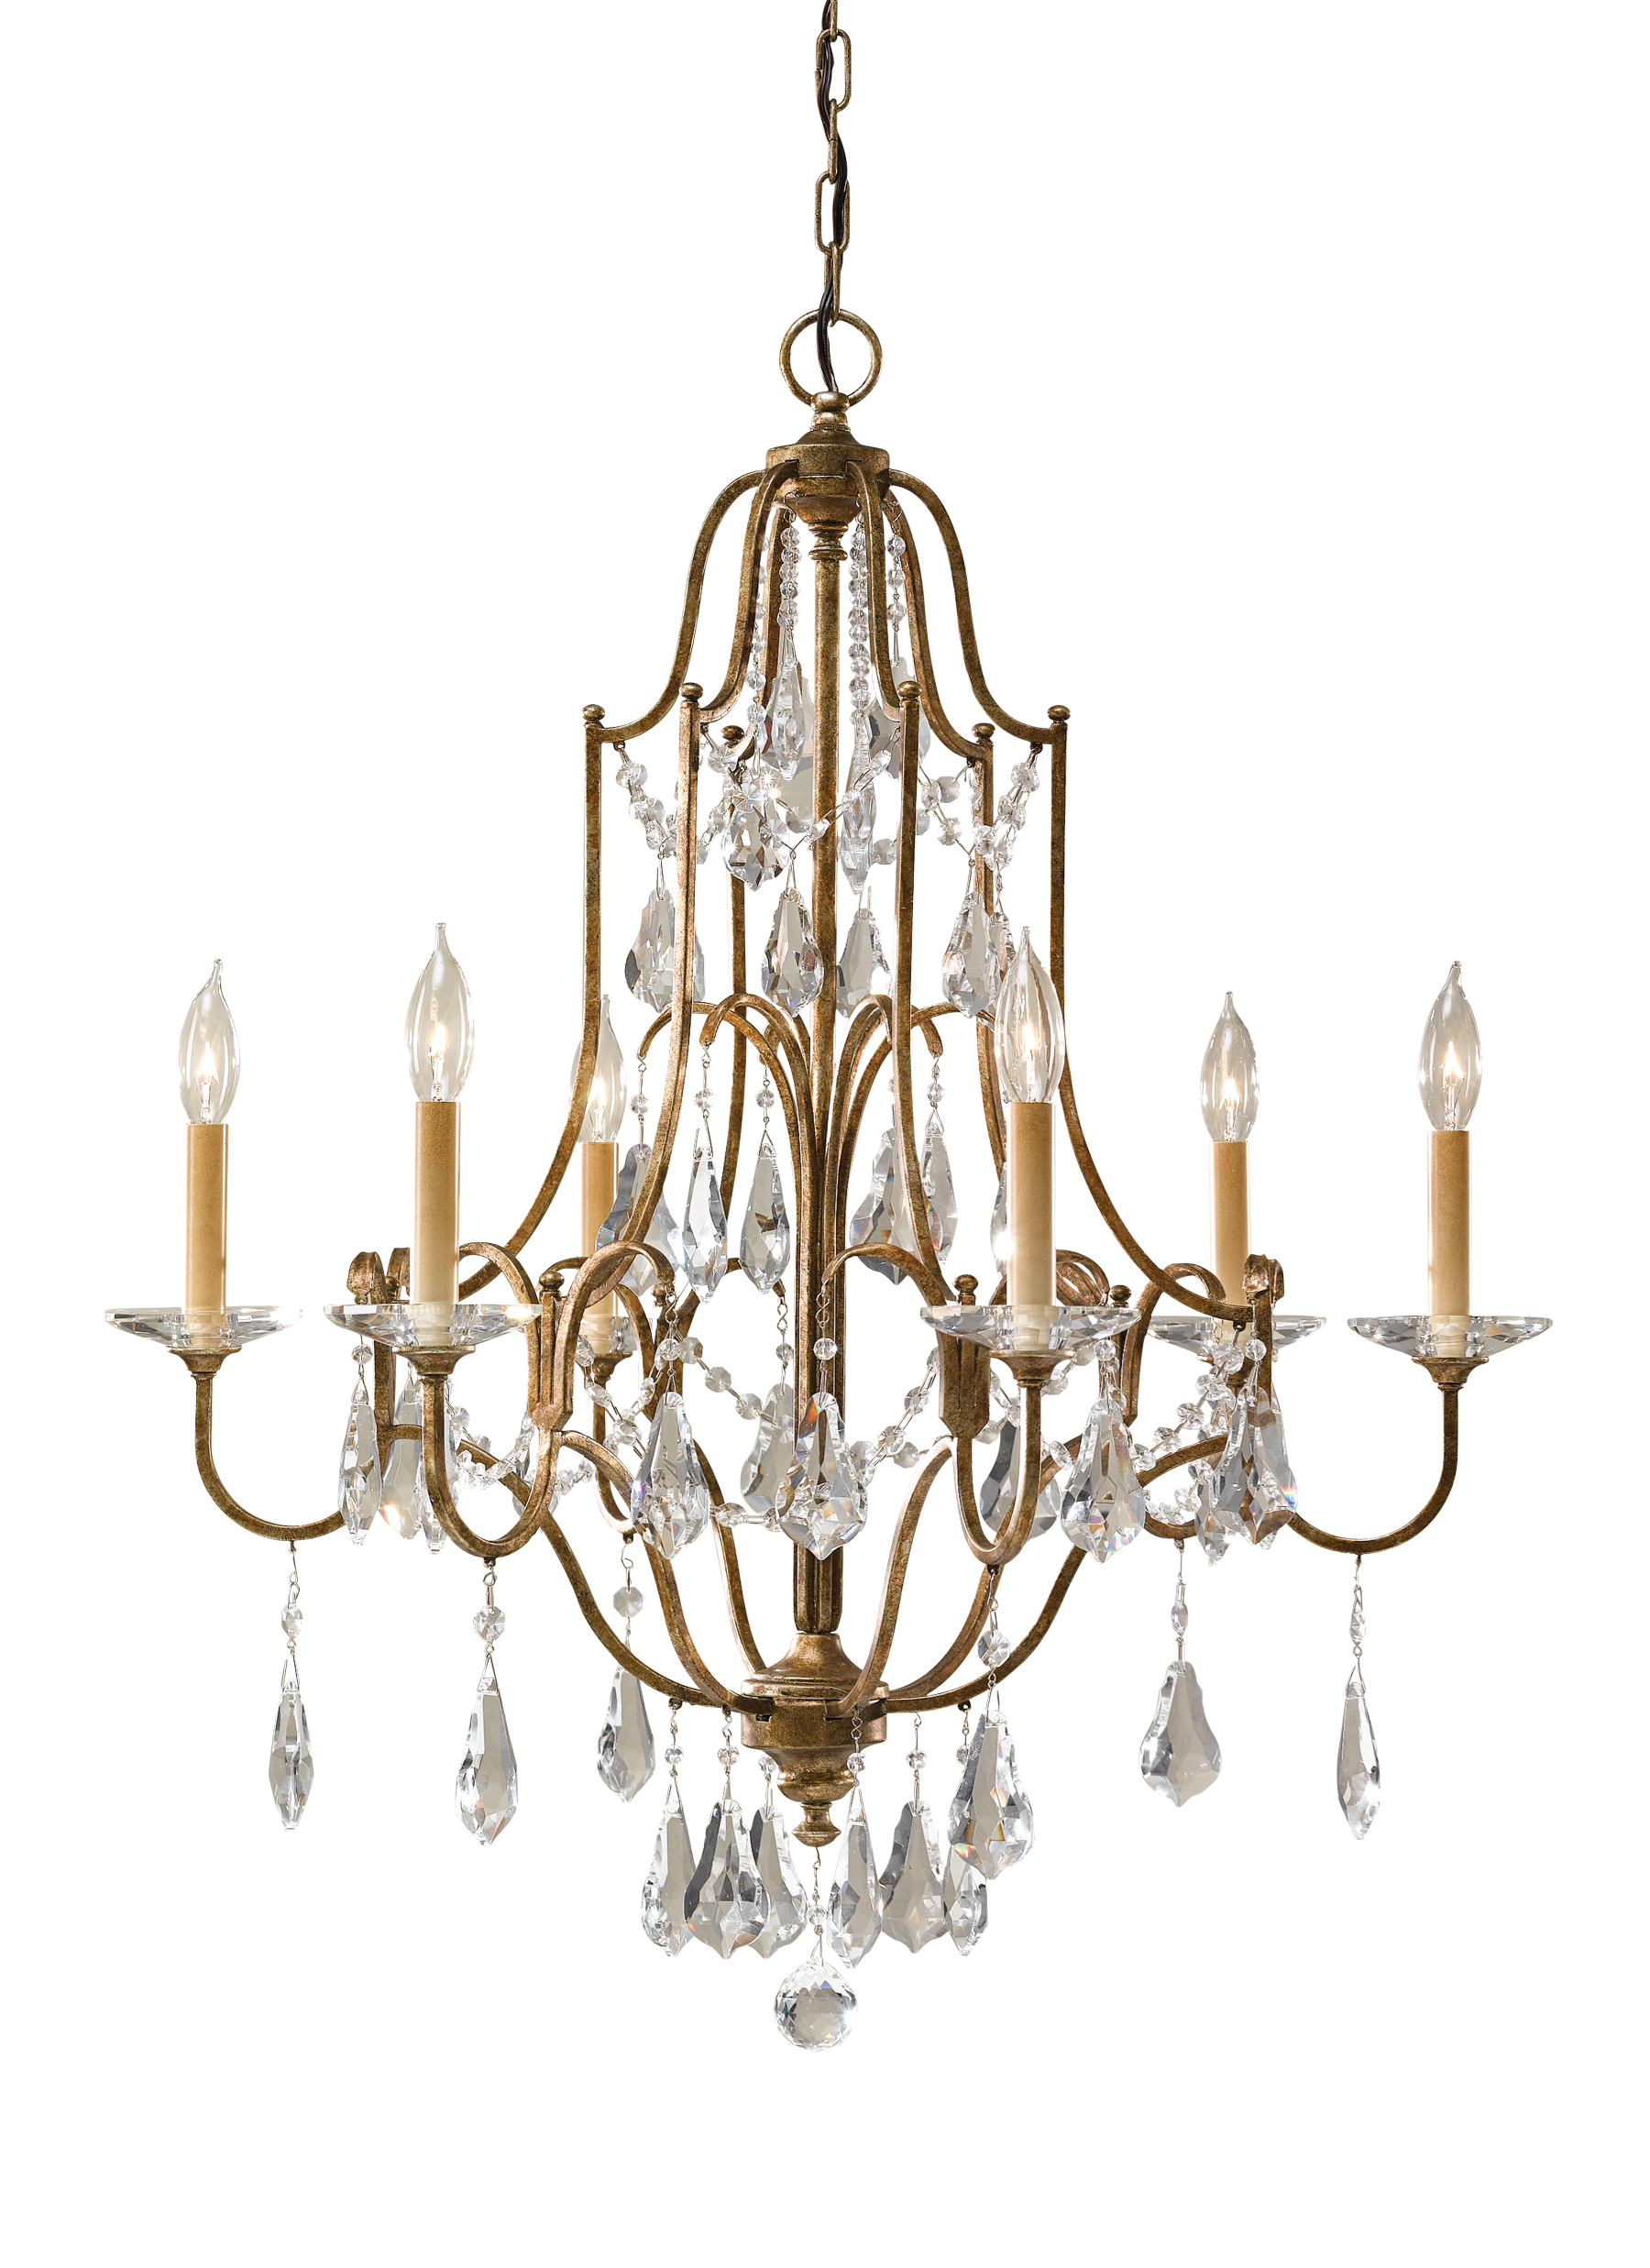 modern kitchen landscape dinning size chandelier room high murray full brands feiss manufacturers underground end light style formal fixtures system of euro dining ideas island lighting chandeliers list